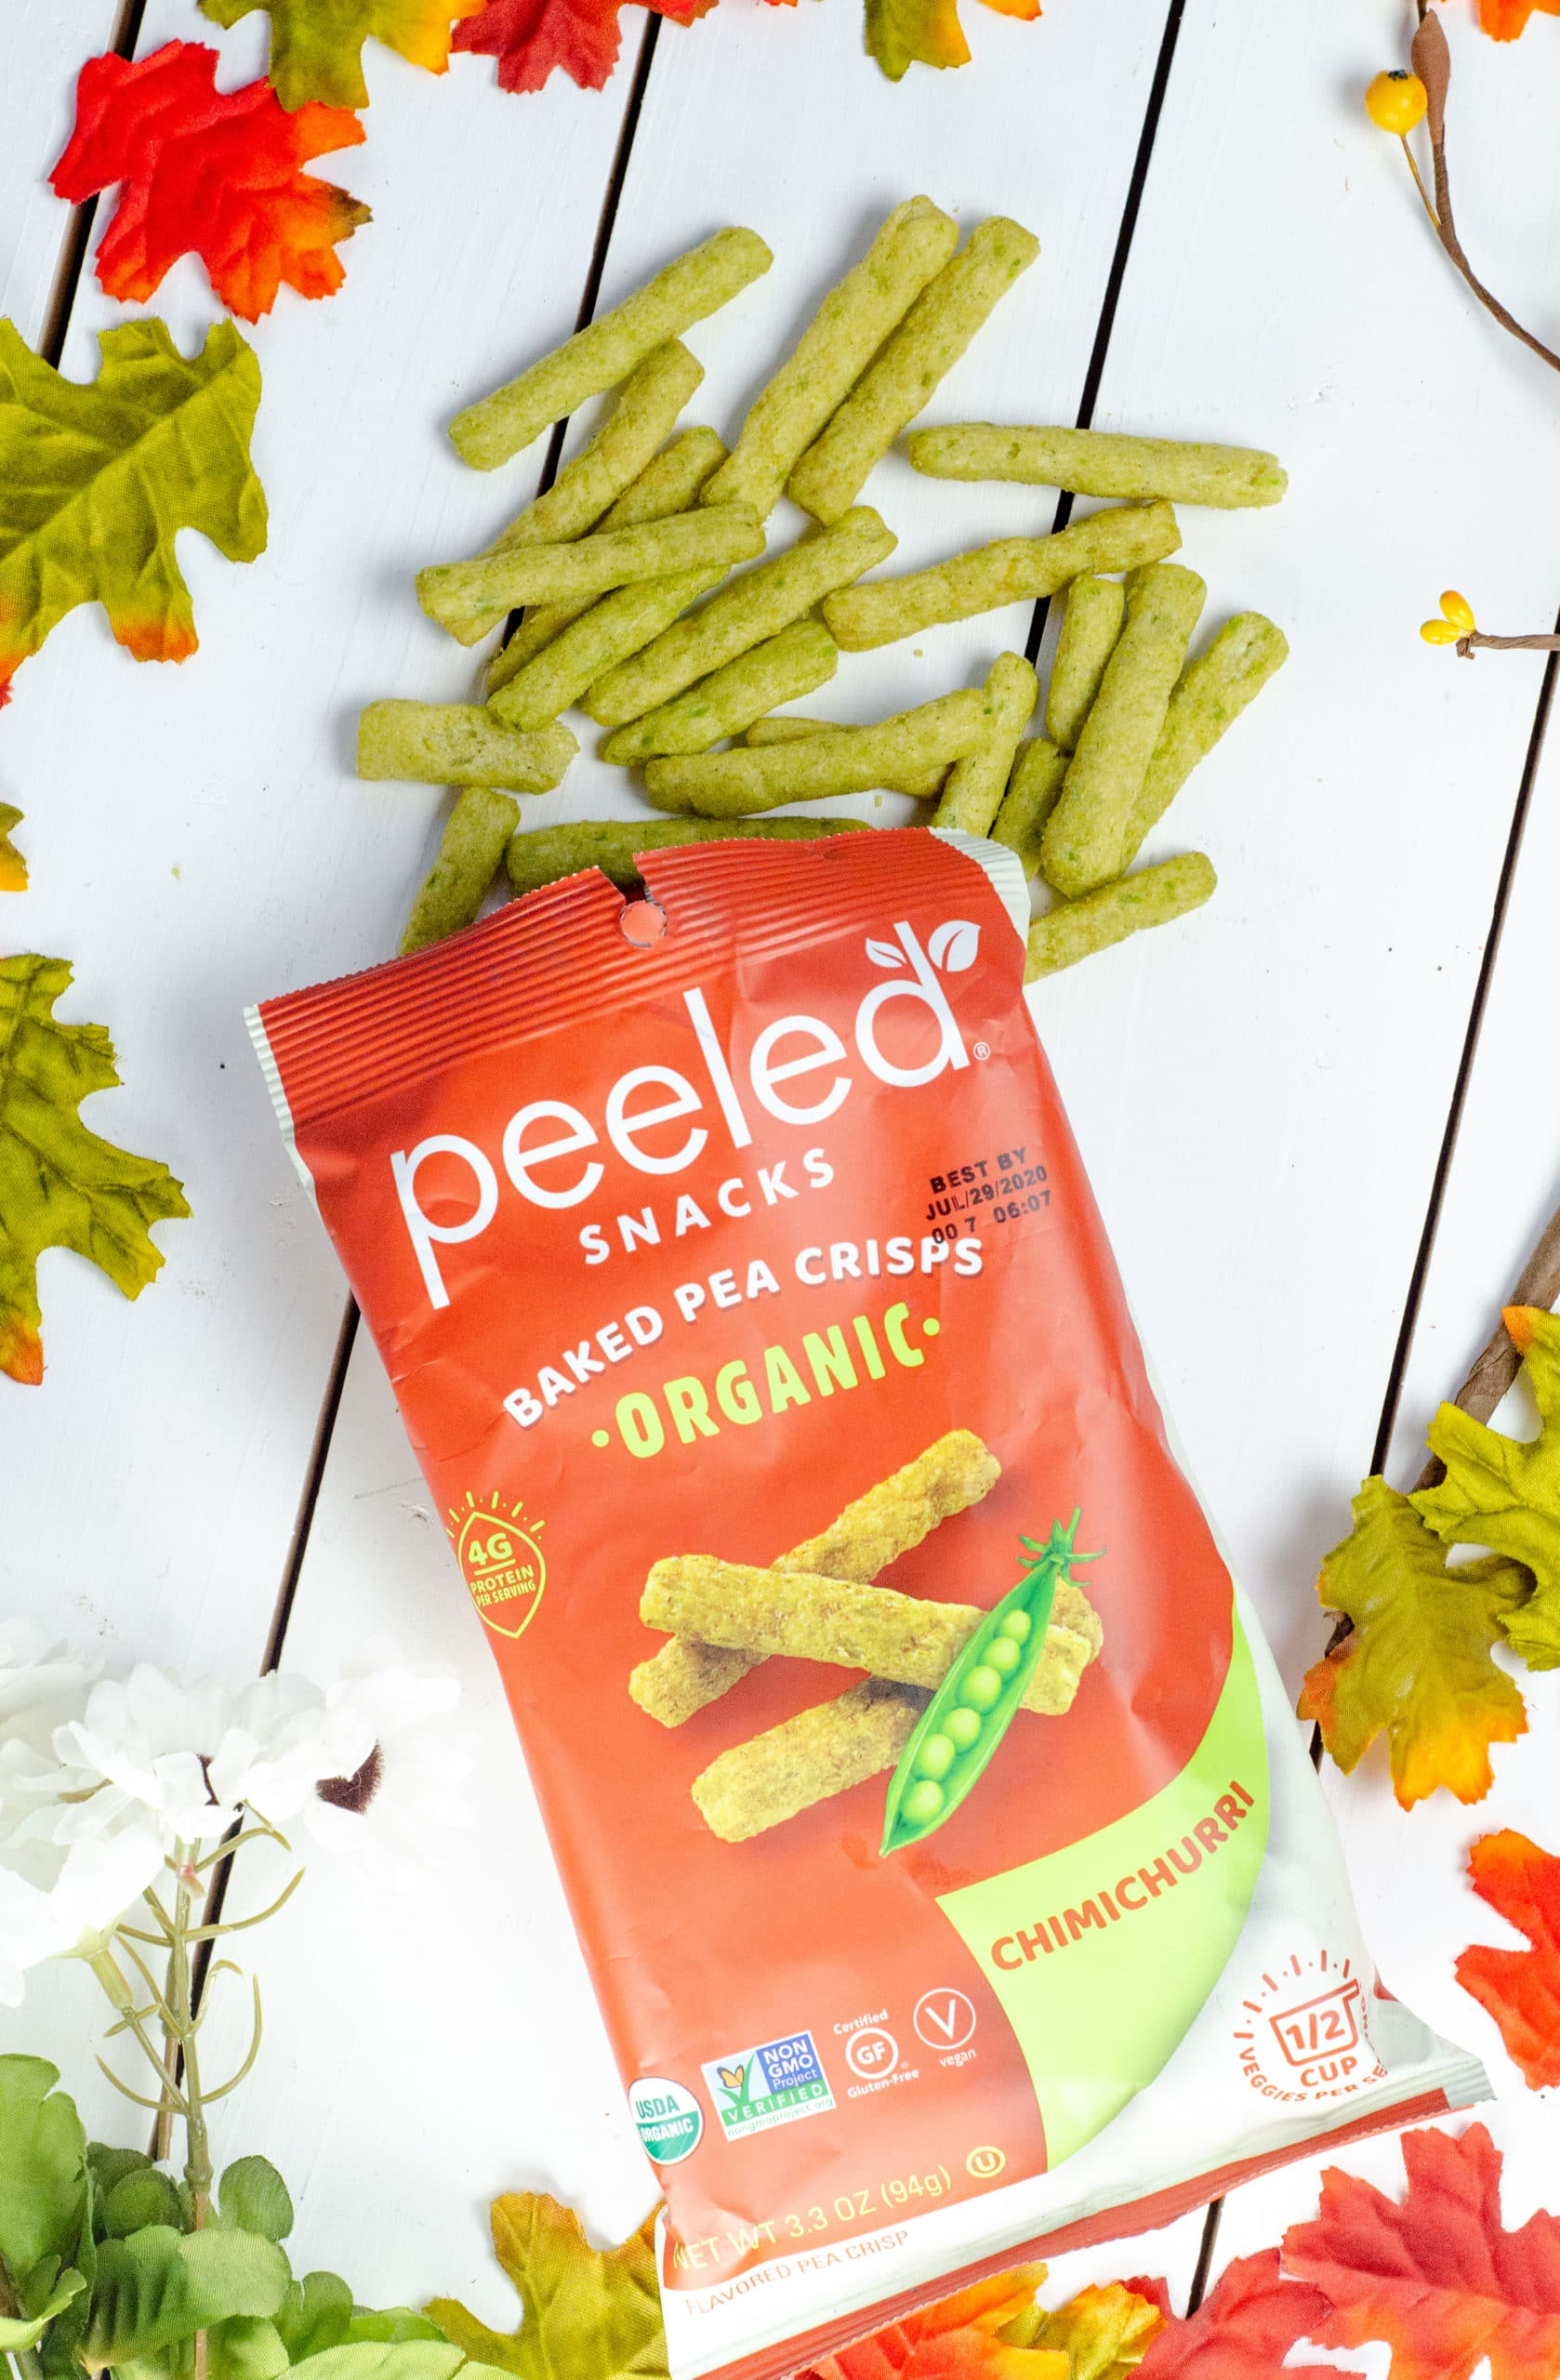 Peeled Chimichurri Baked Pea Crisps. Gift your hostess a Thanksgiving themed box of goodies. Gift them products they can use on Thanksgiving Day as well as after.